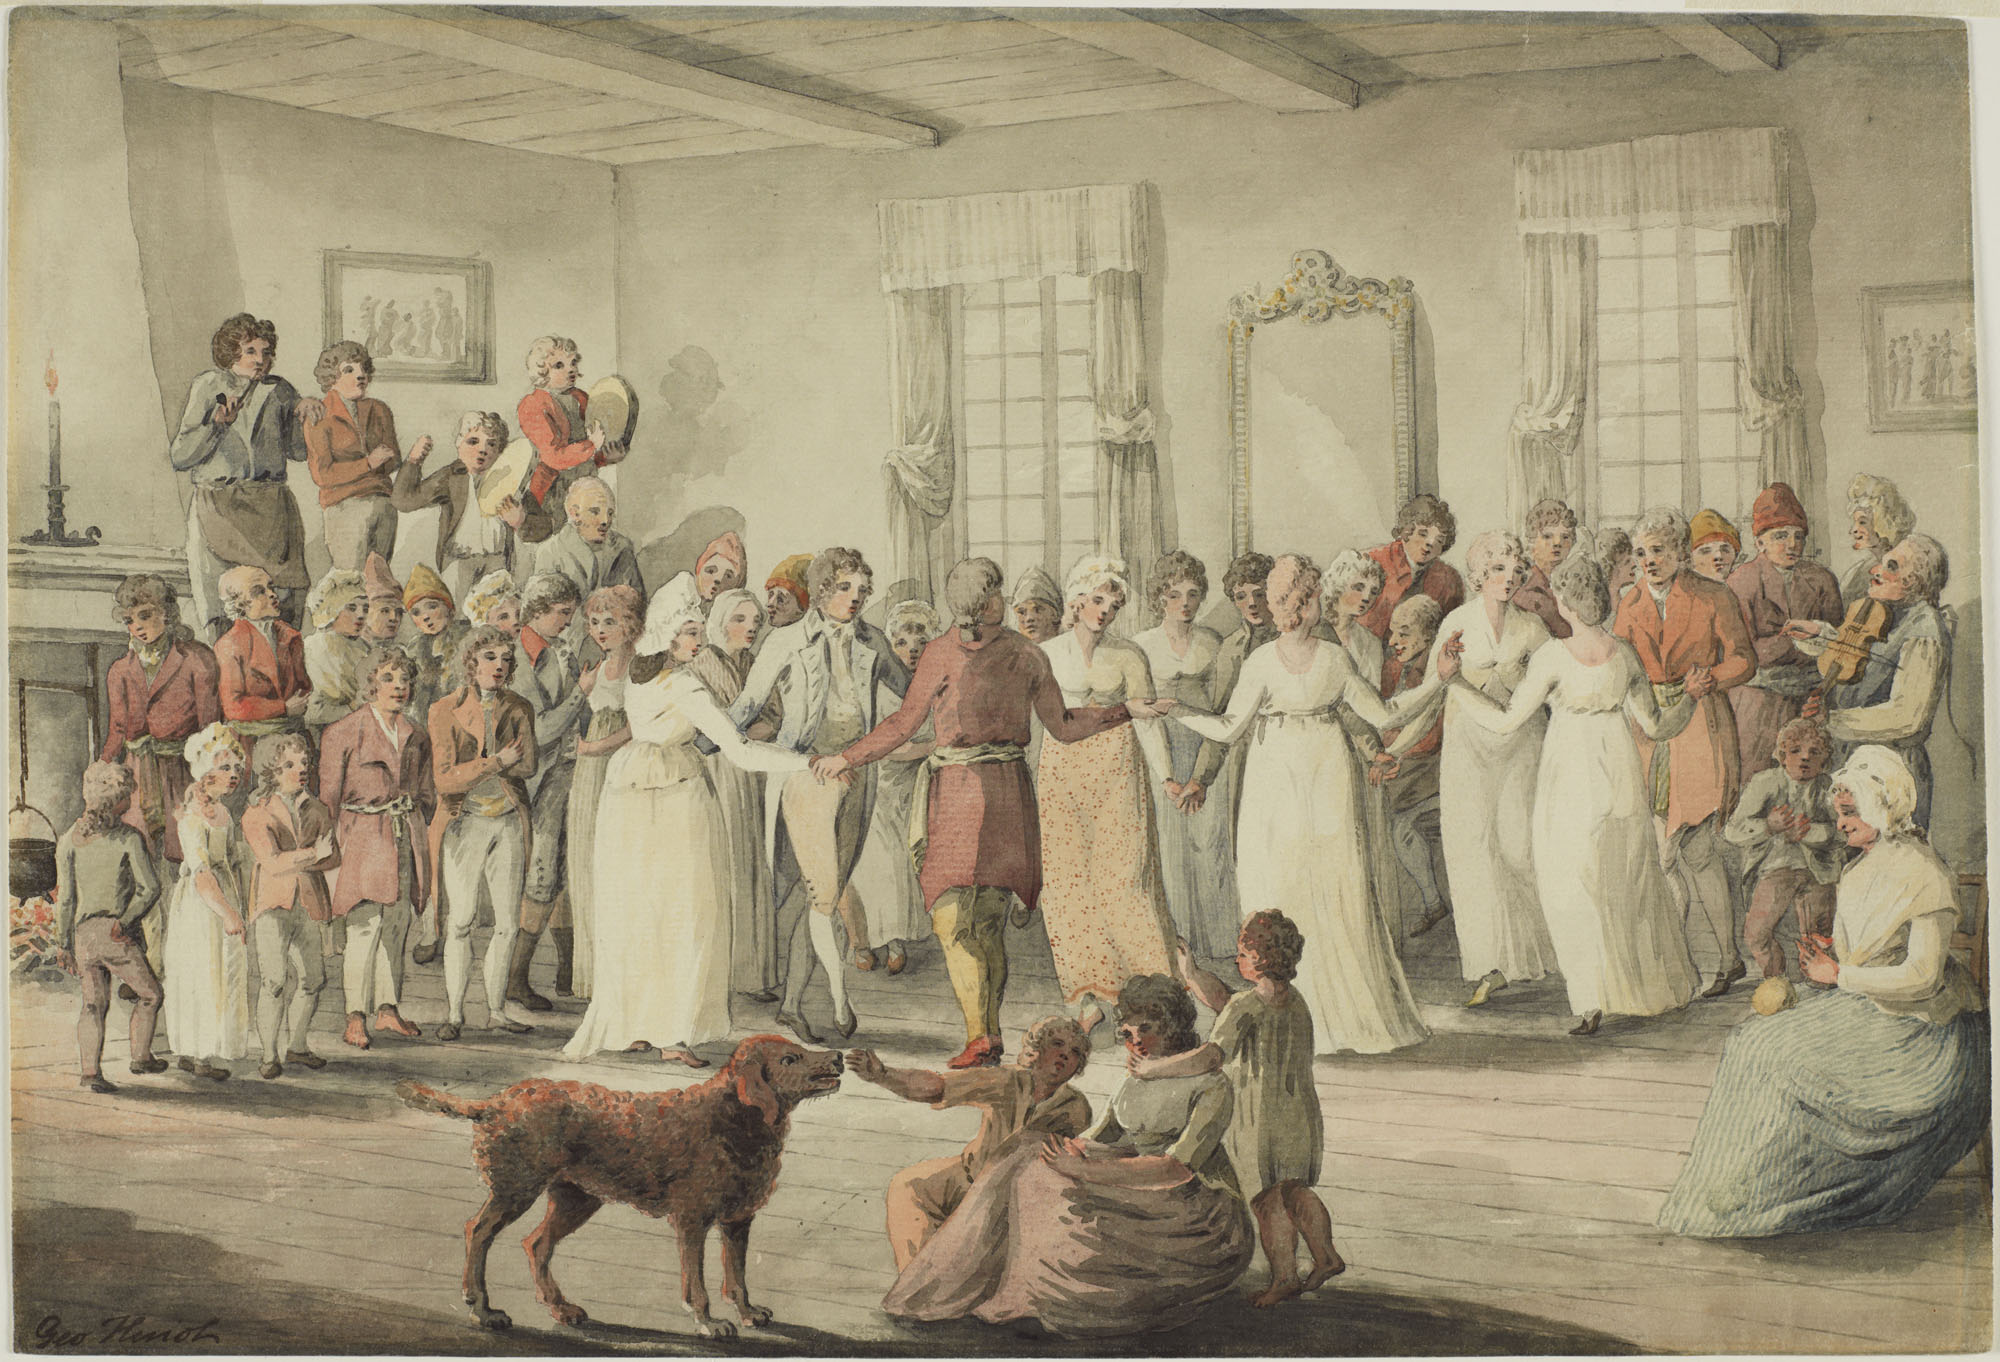 Dance in the Château St. Louis, 1801. (item 2)